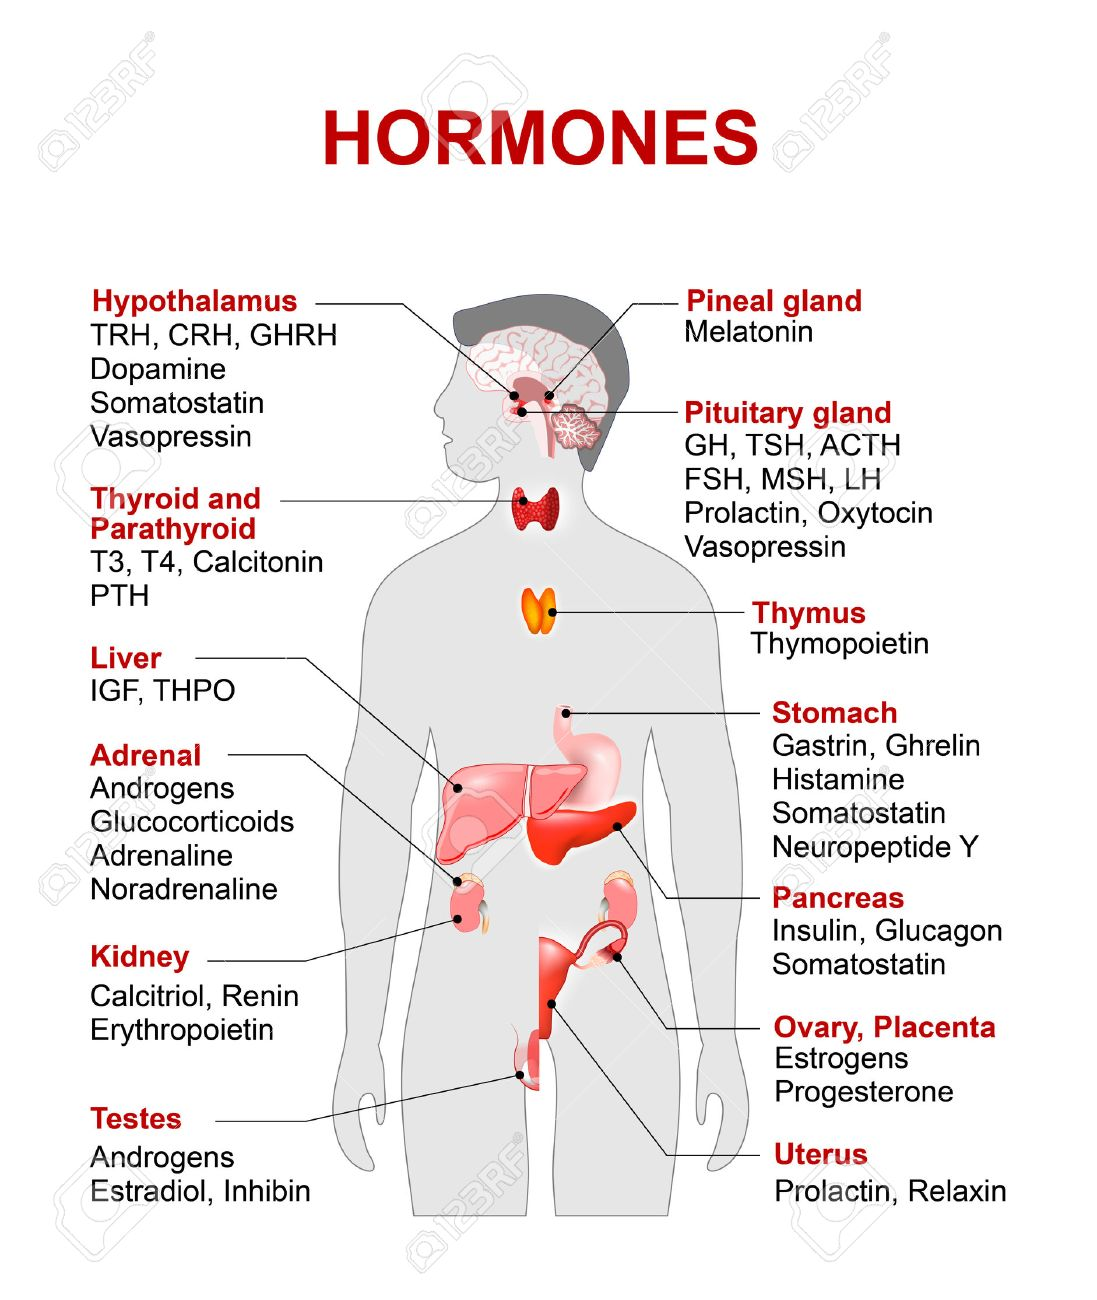 endocrine gland and hormones. human endocrine system. anatomy